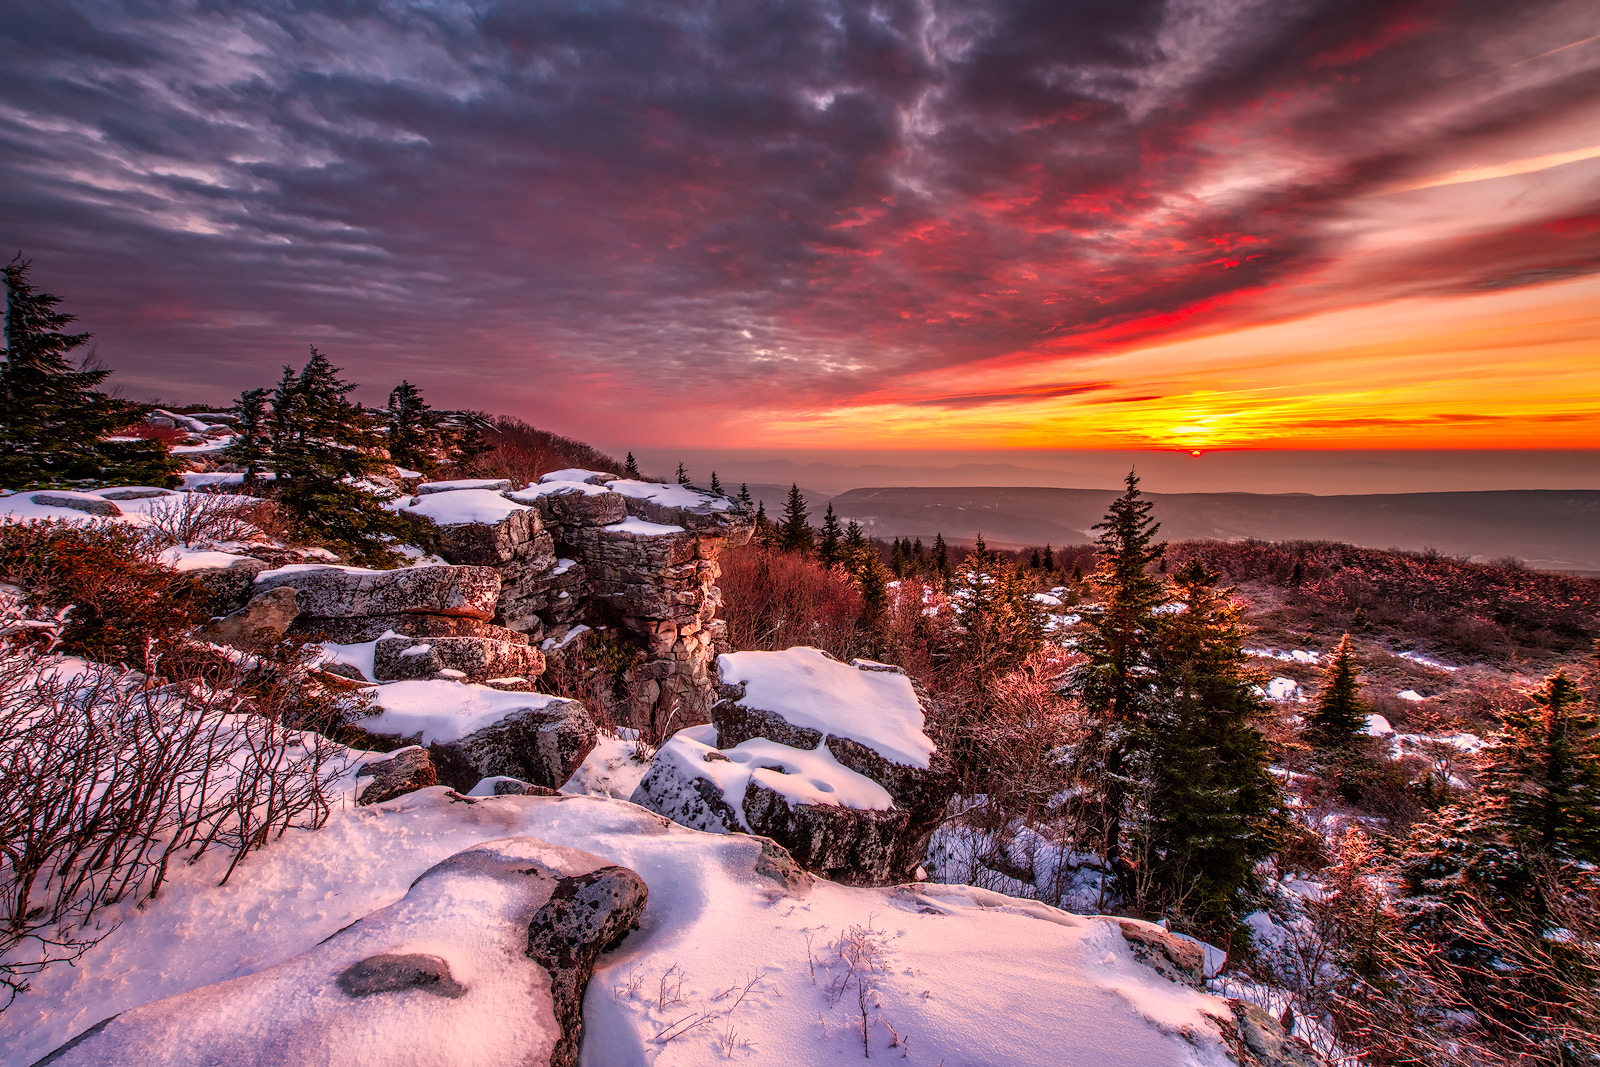 I have photographed many sunrises on Dolly Sods; however, this image will be the most memorable image I have ever captured from...